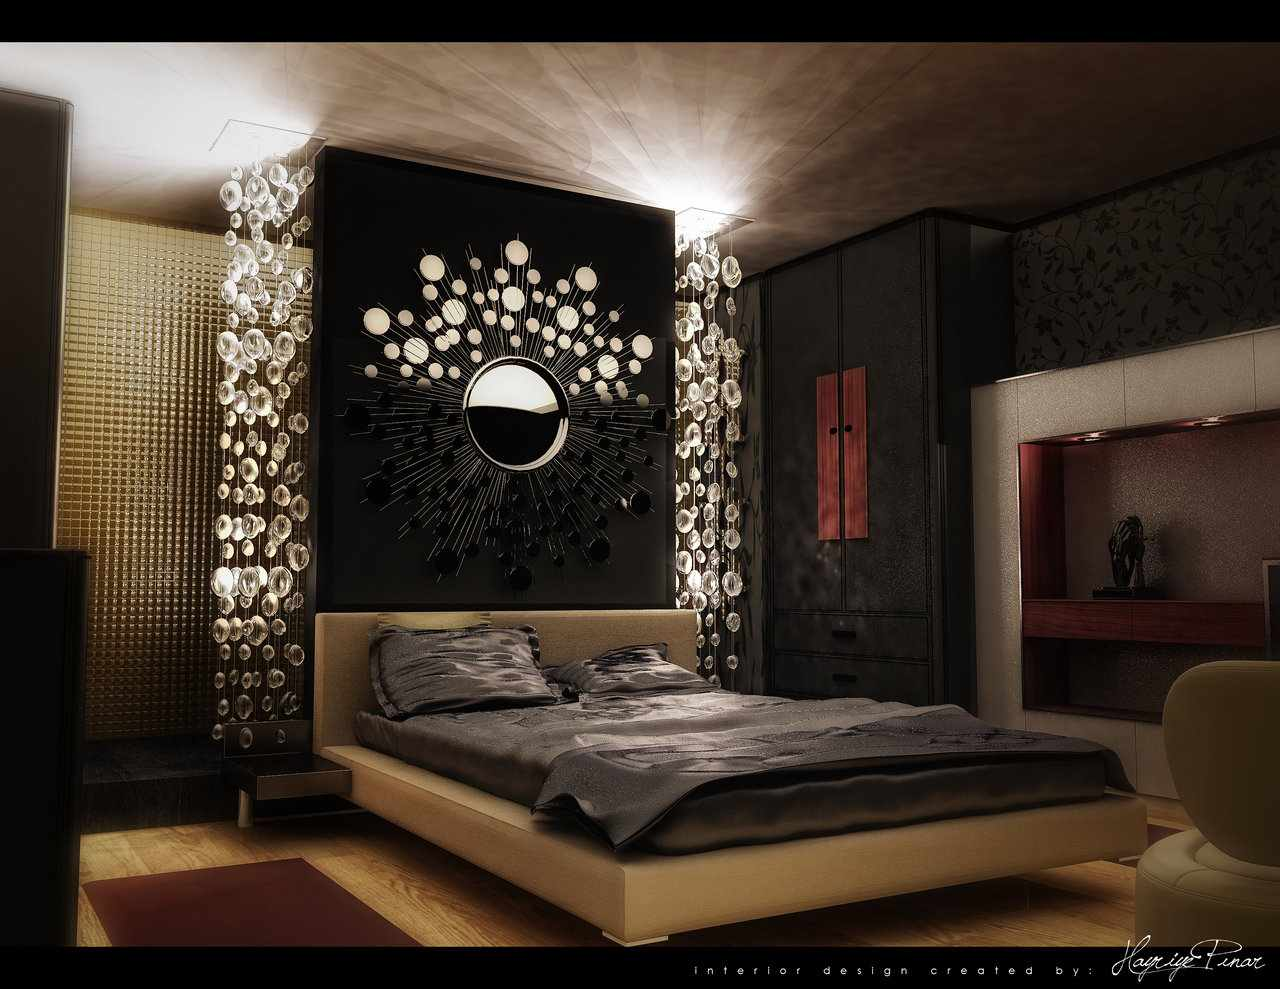 ikea bedroom ideas ikea bedroom 2014 ideas exotic